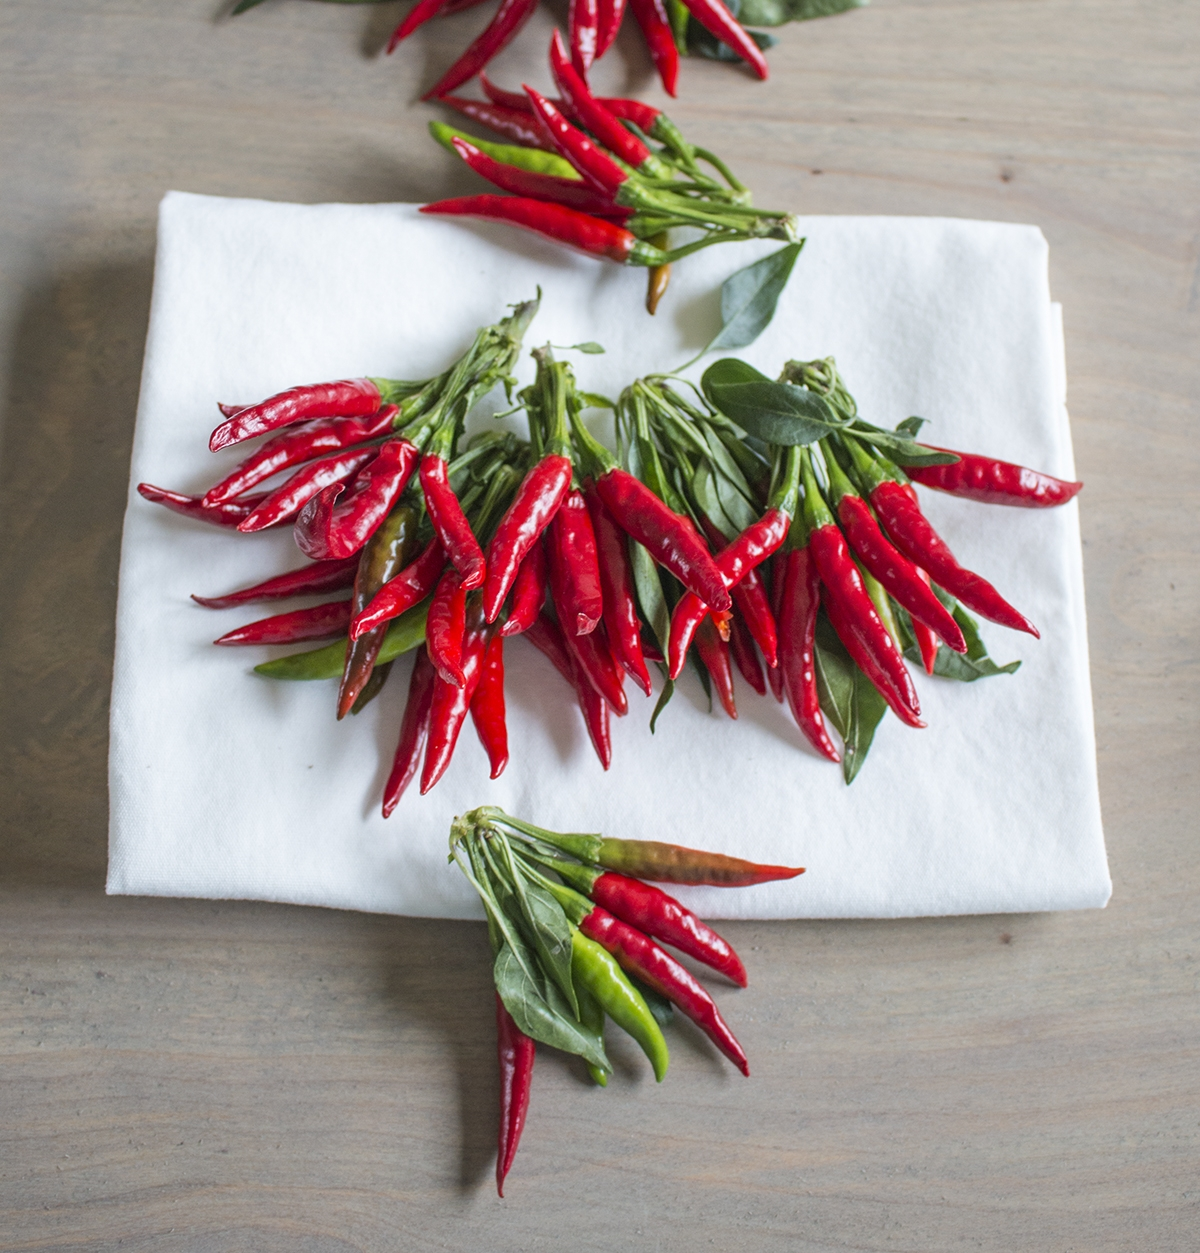 Thai Chili Peppers